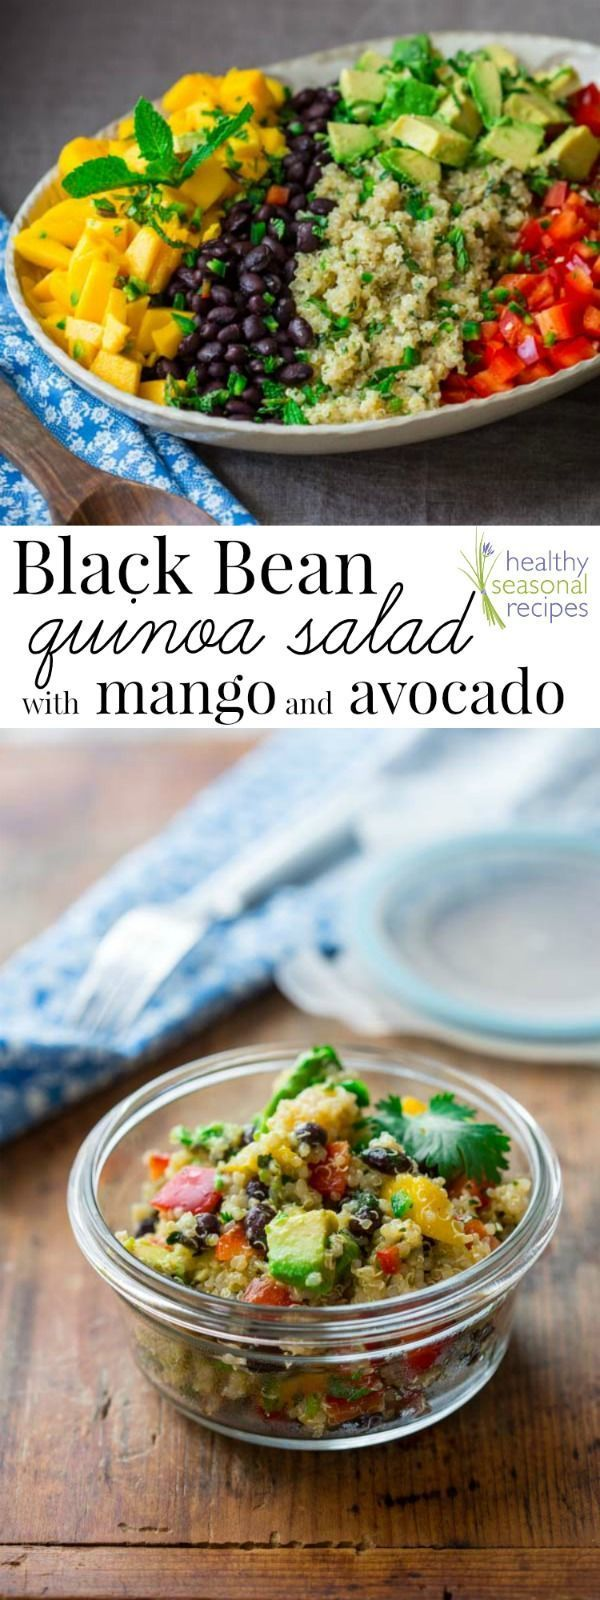 Blog post at Healthy Seasonal Recipes : This black bean and quinoa salad with mango and avocado is a delicious gluten-free side salad for potlucks, parties and summertime picnics, [..] #Detoxrecipes